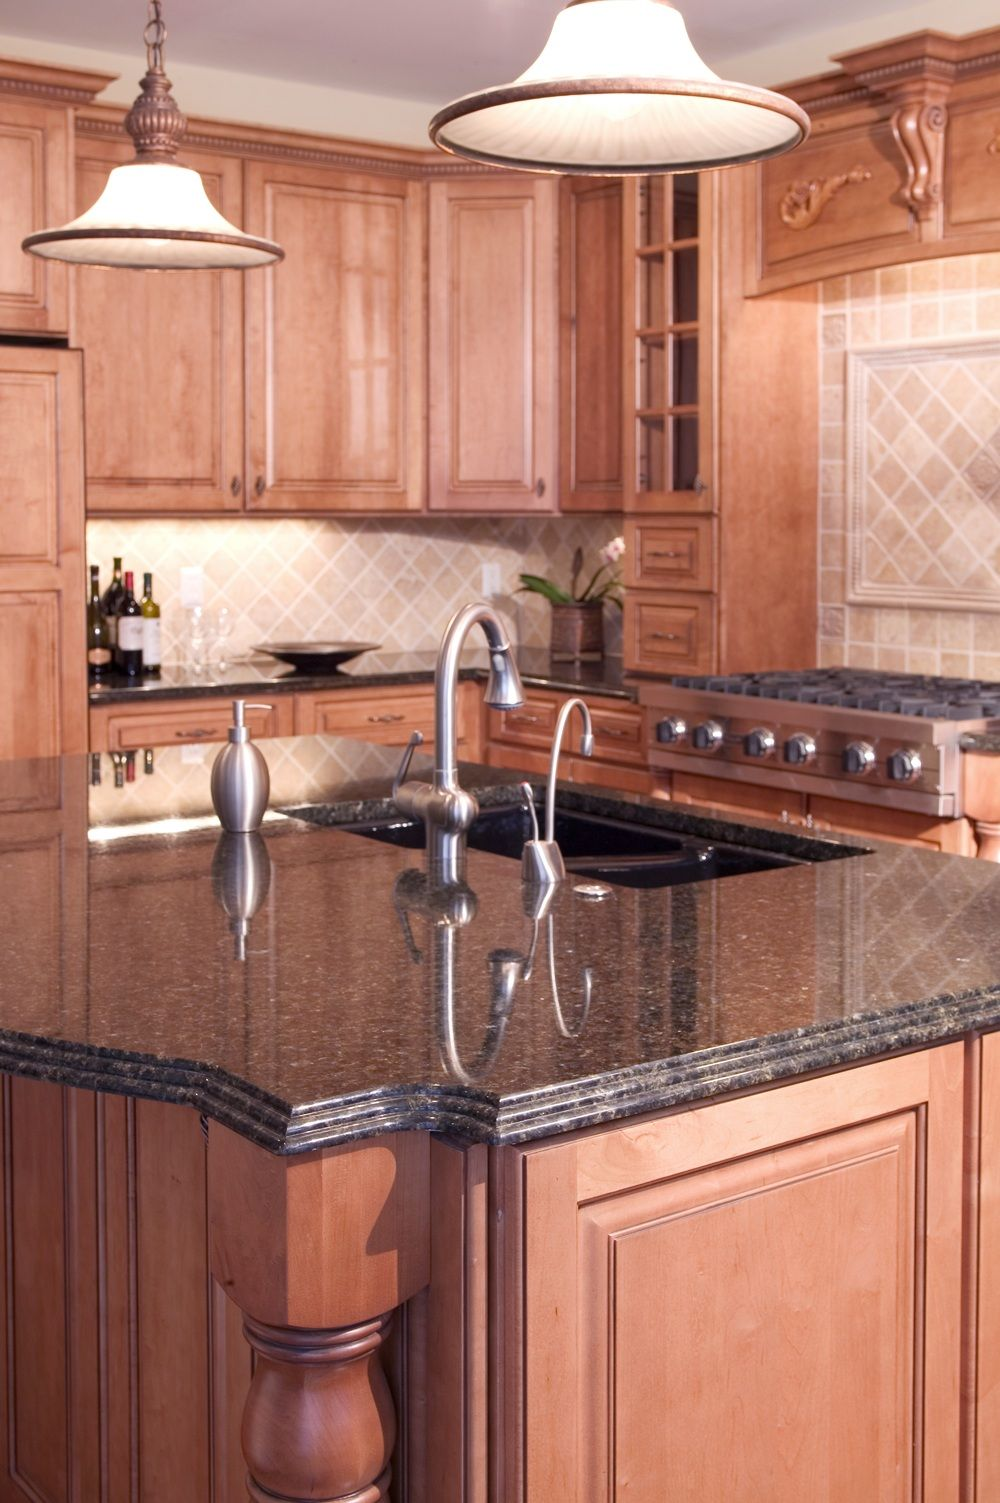 Dark Granite Kitchen Countertops Kitchen Cabinets And Countertops Beige Granite Countertop Colors